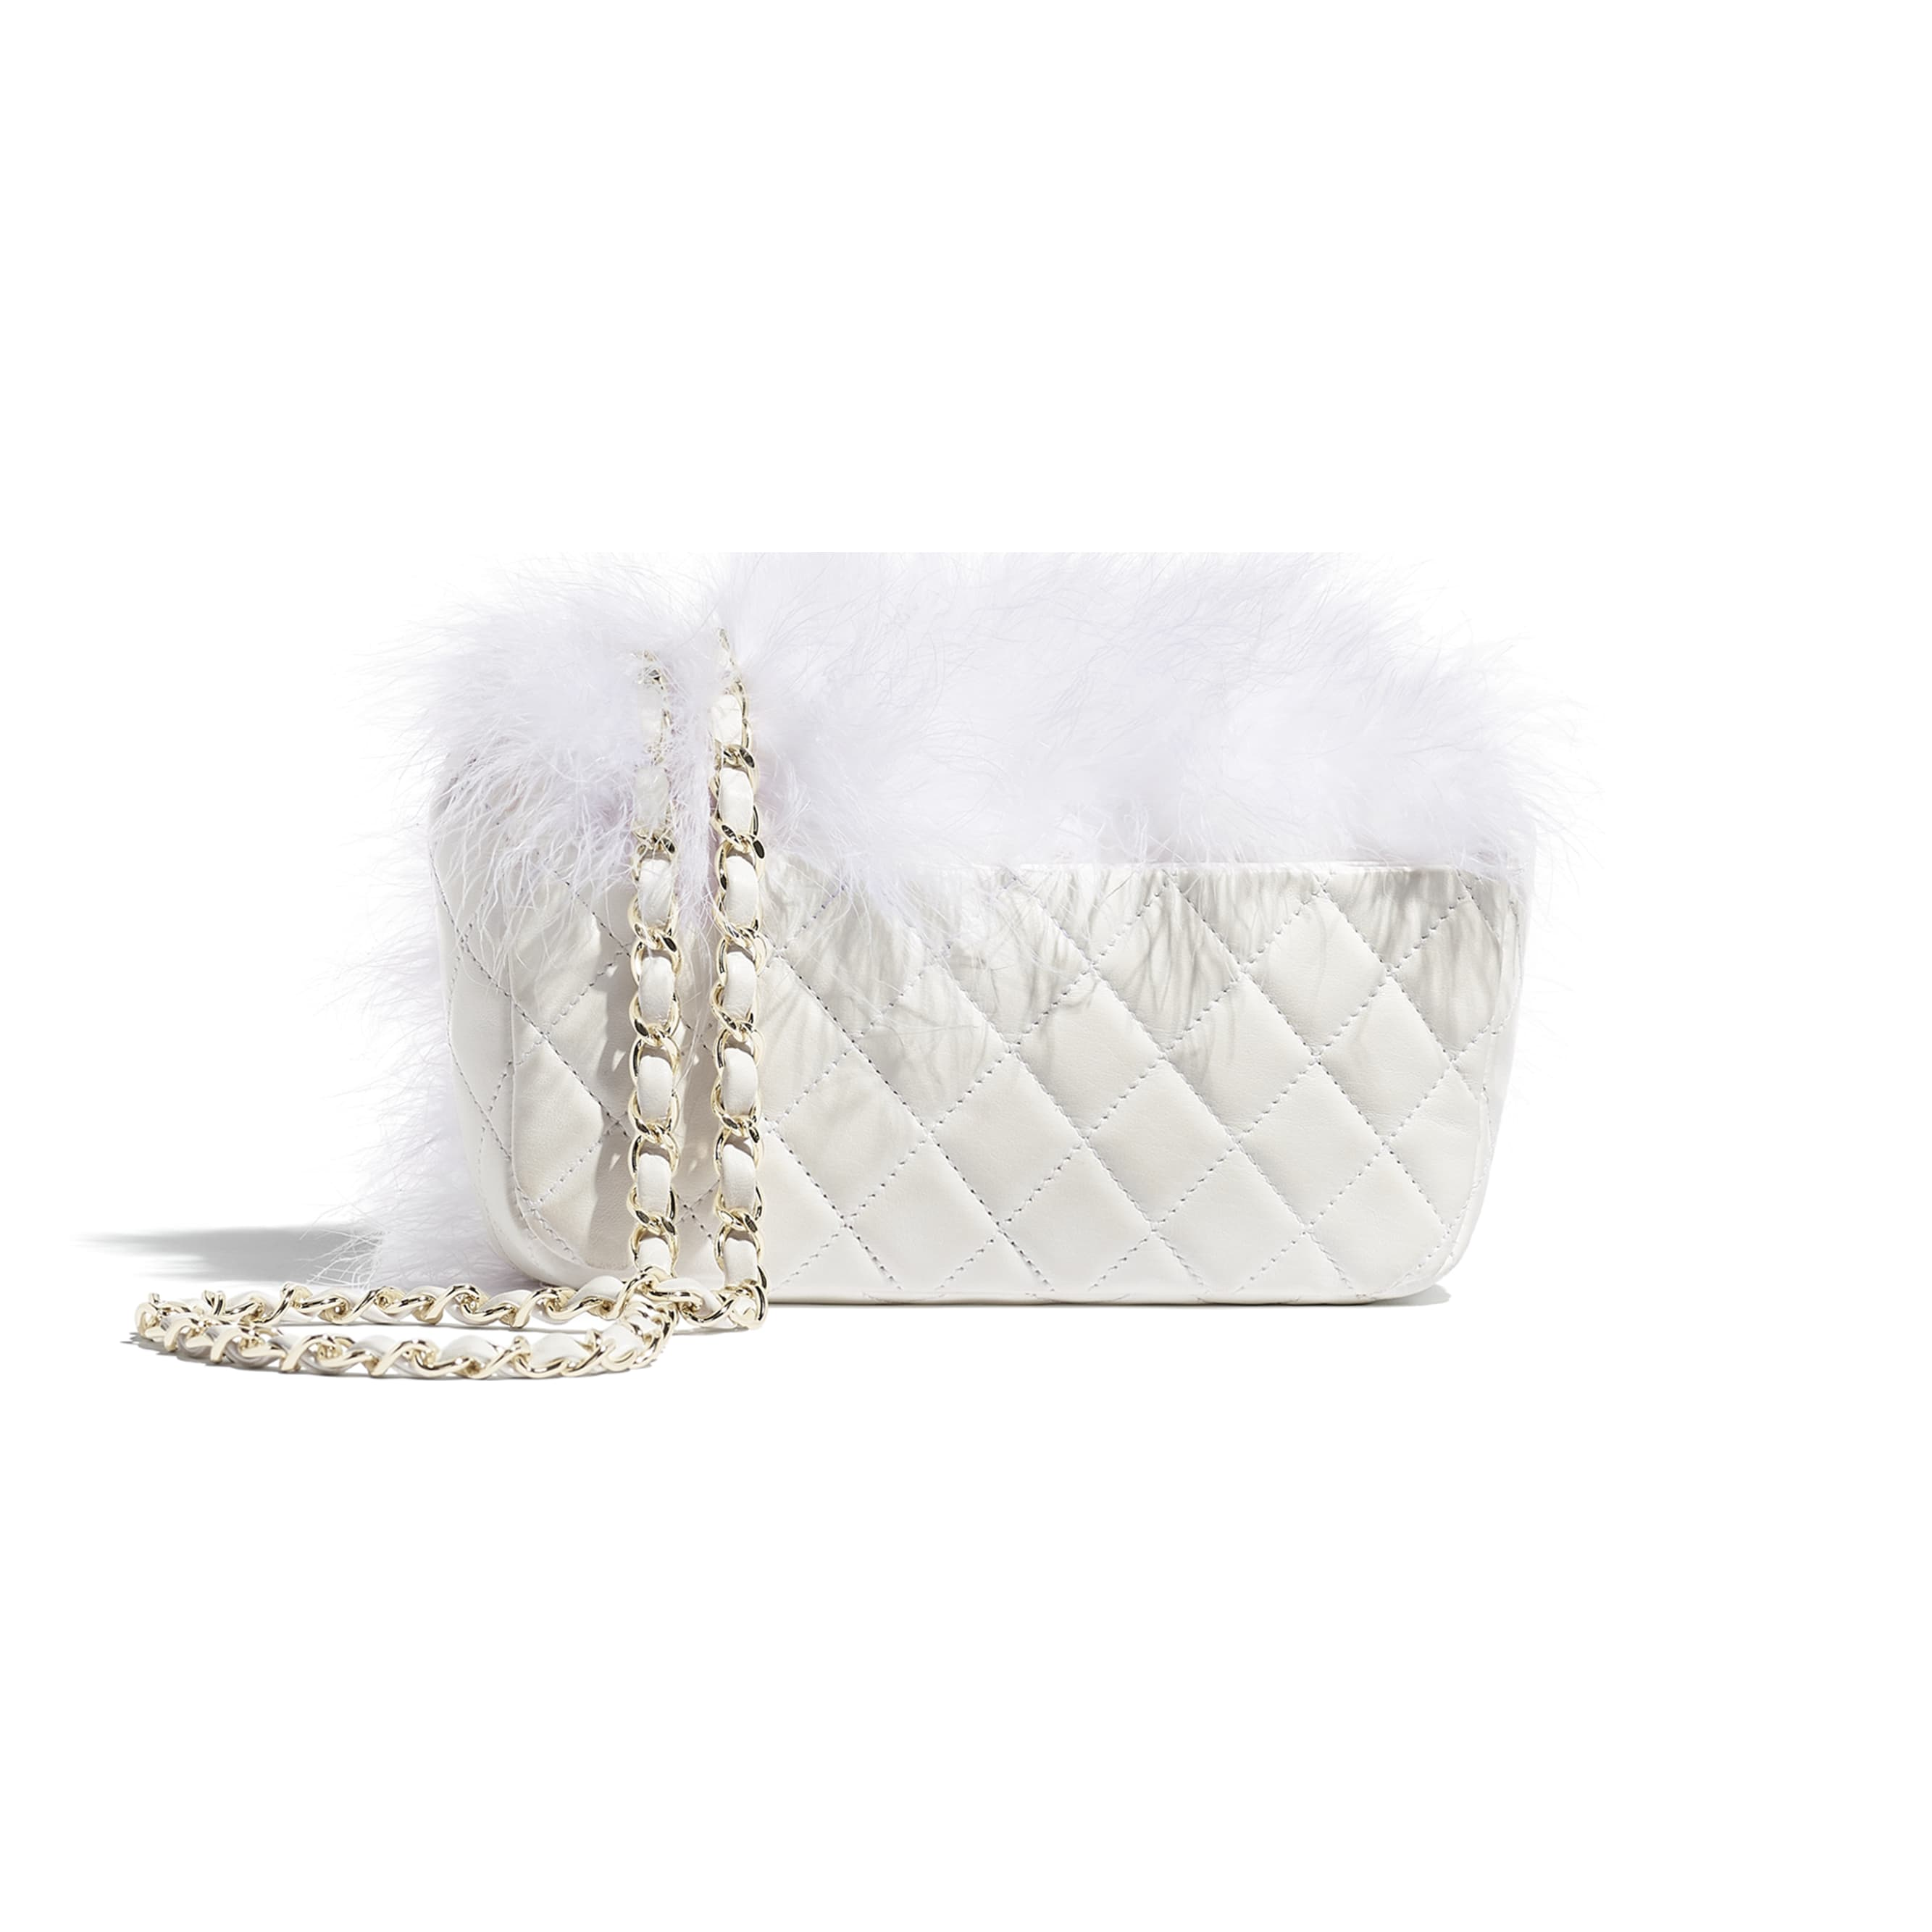 Flap Bag - White - Feathers, Lambskin & Gold-Tone Metal - Alternative view - see standard sized version